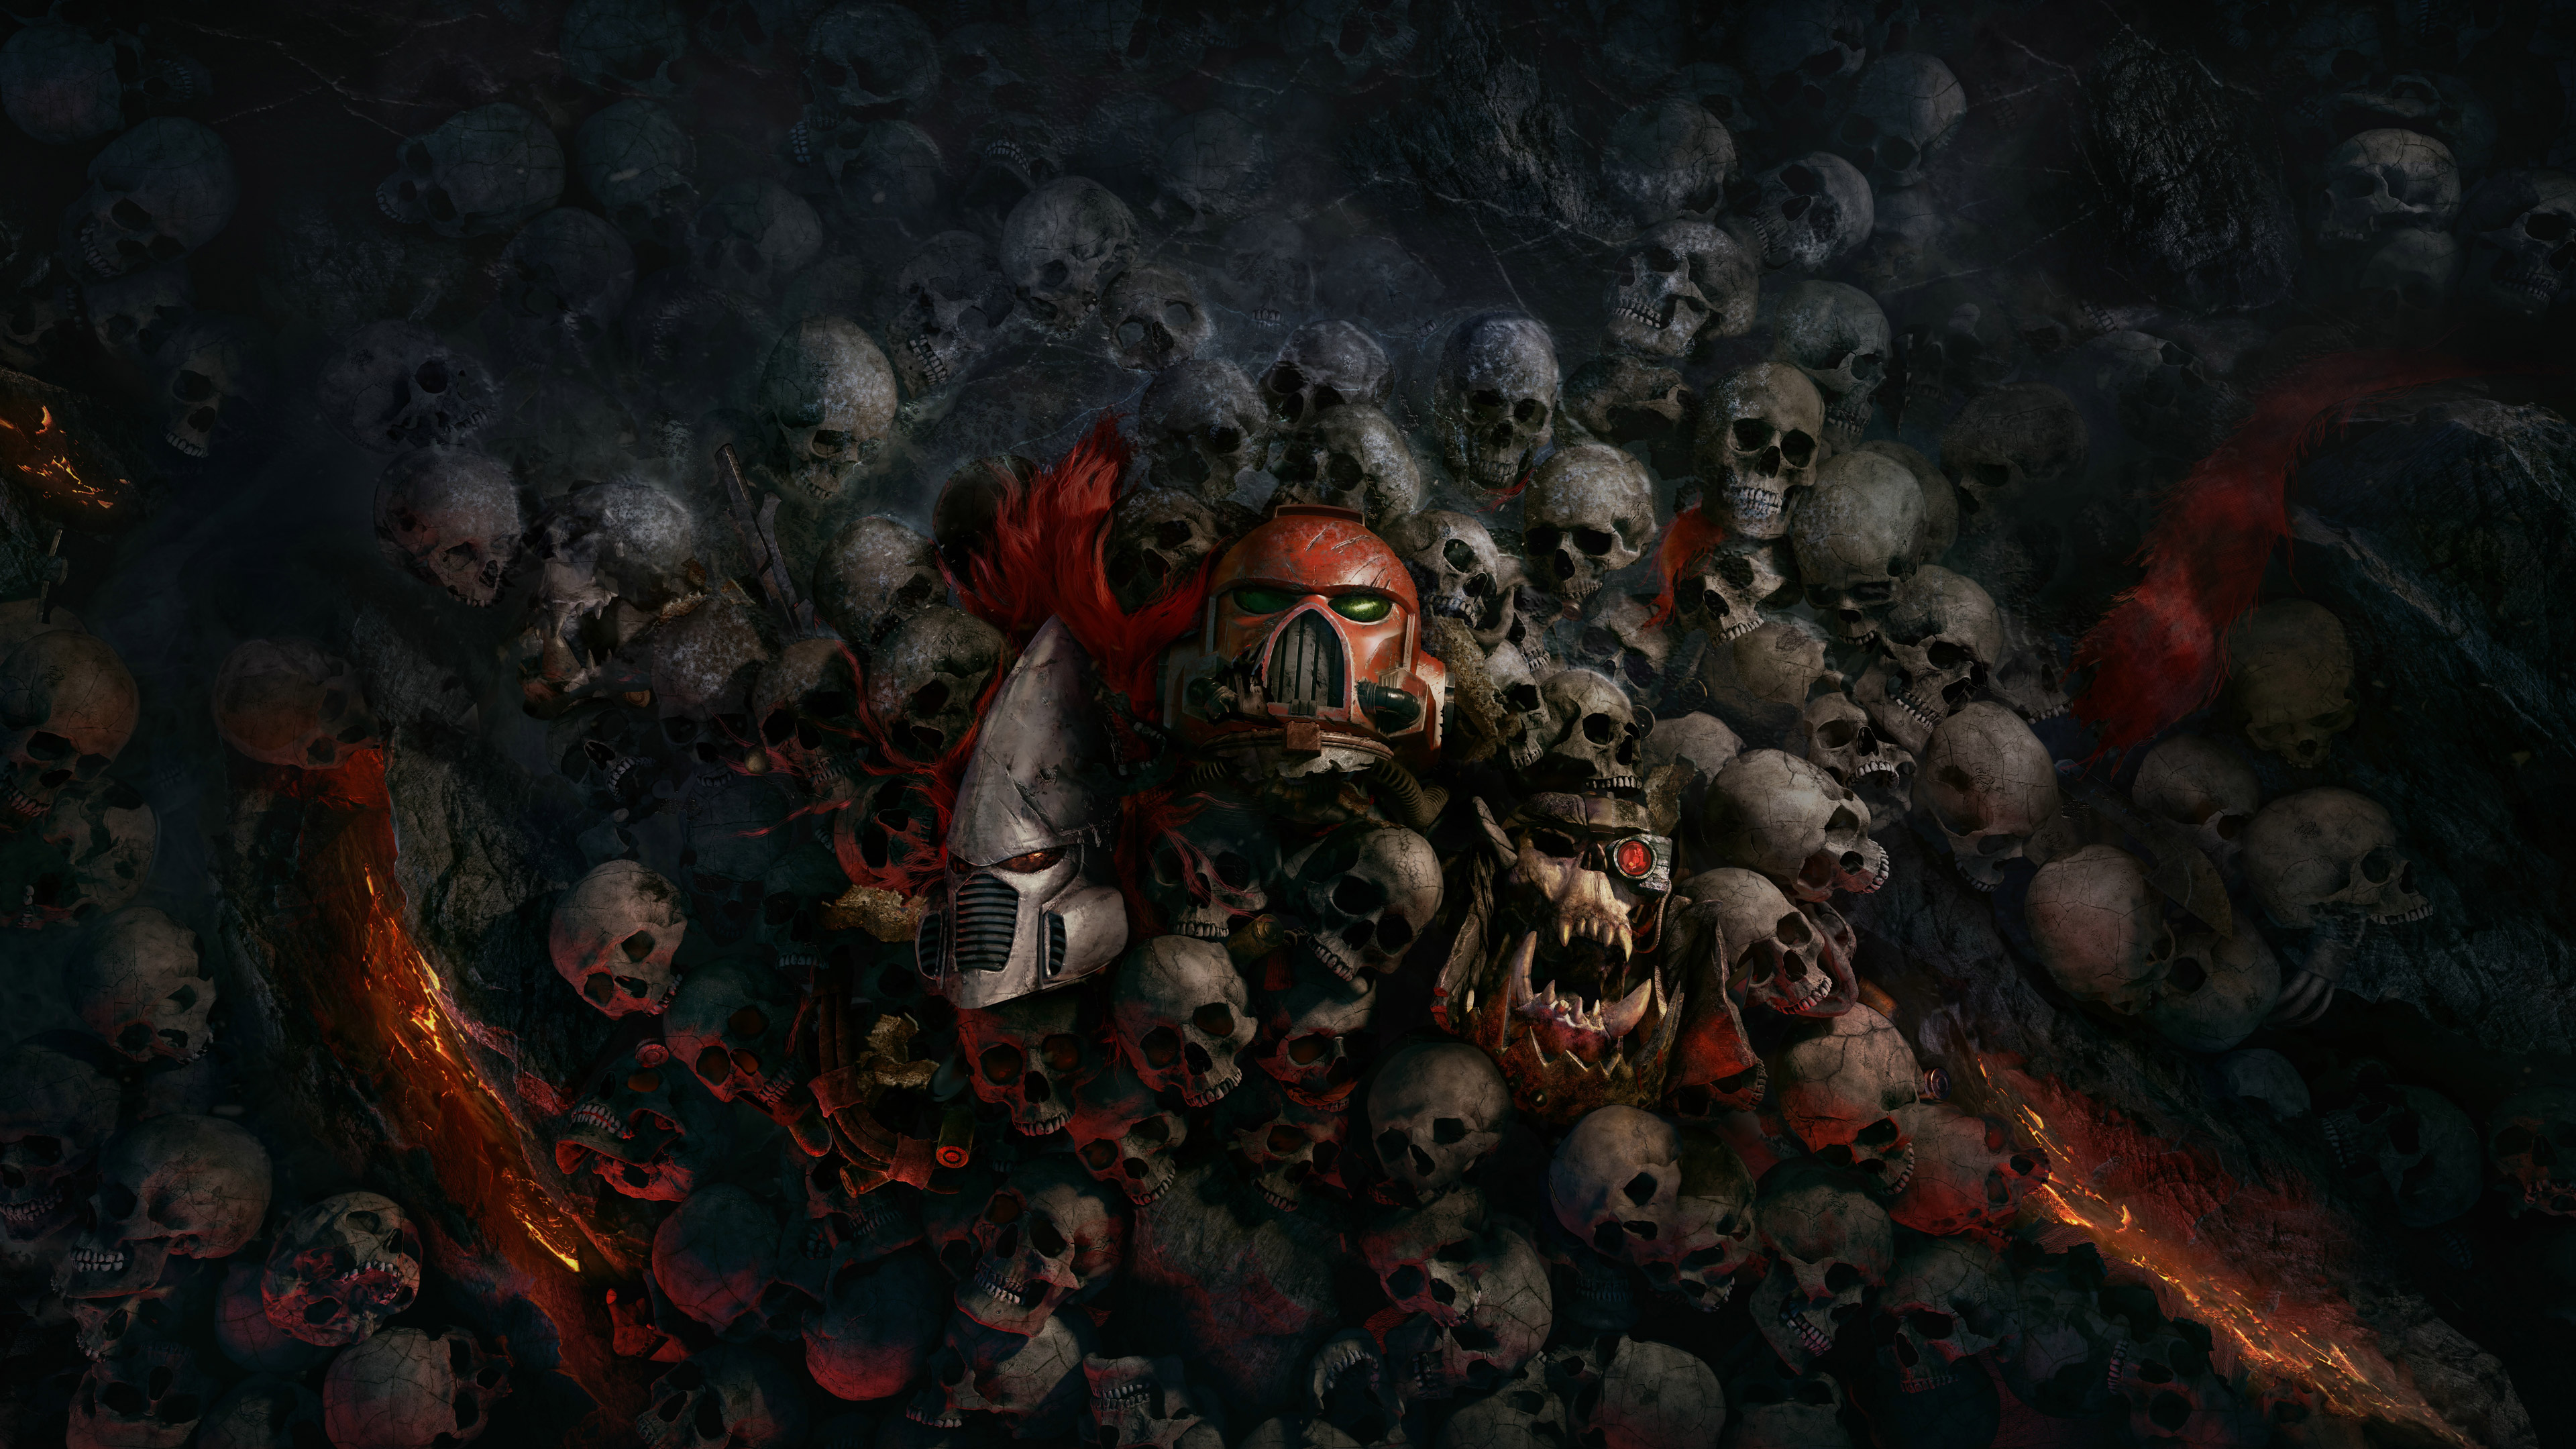 Skulls 4k Hd Others 4k Wallpapers Images Backgrounds Photos And